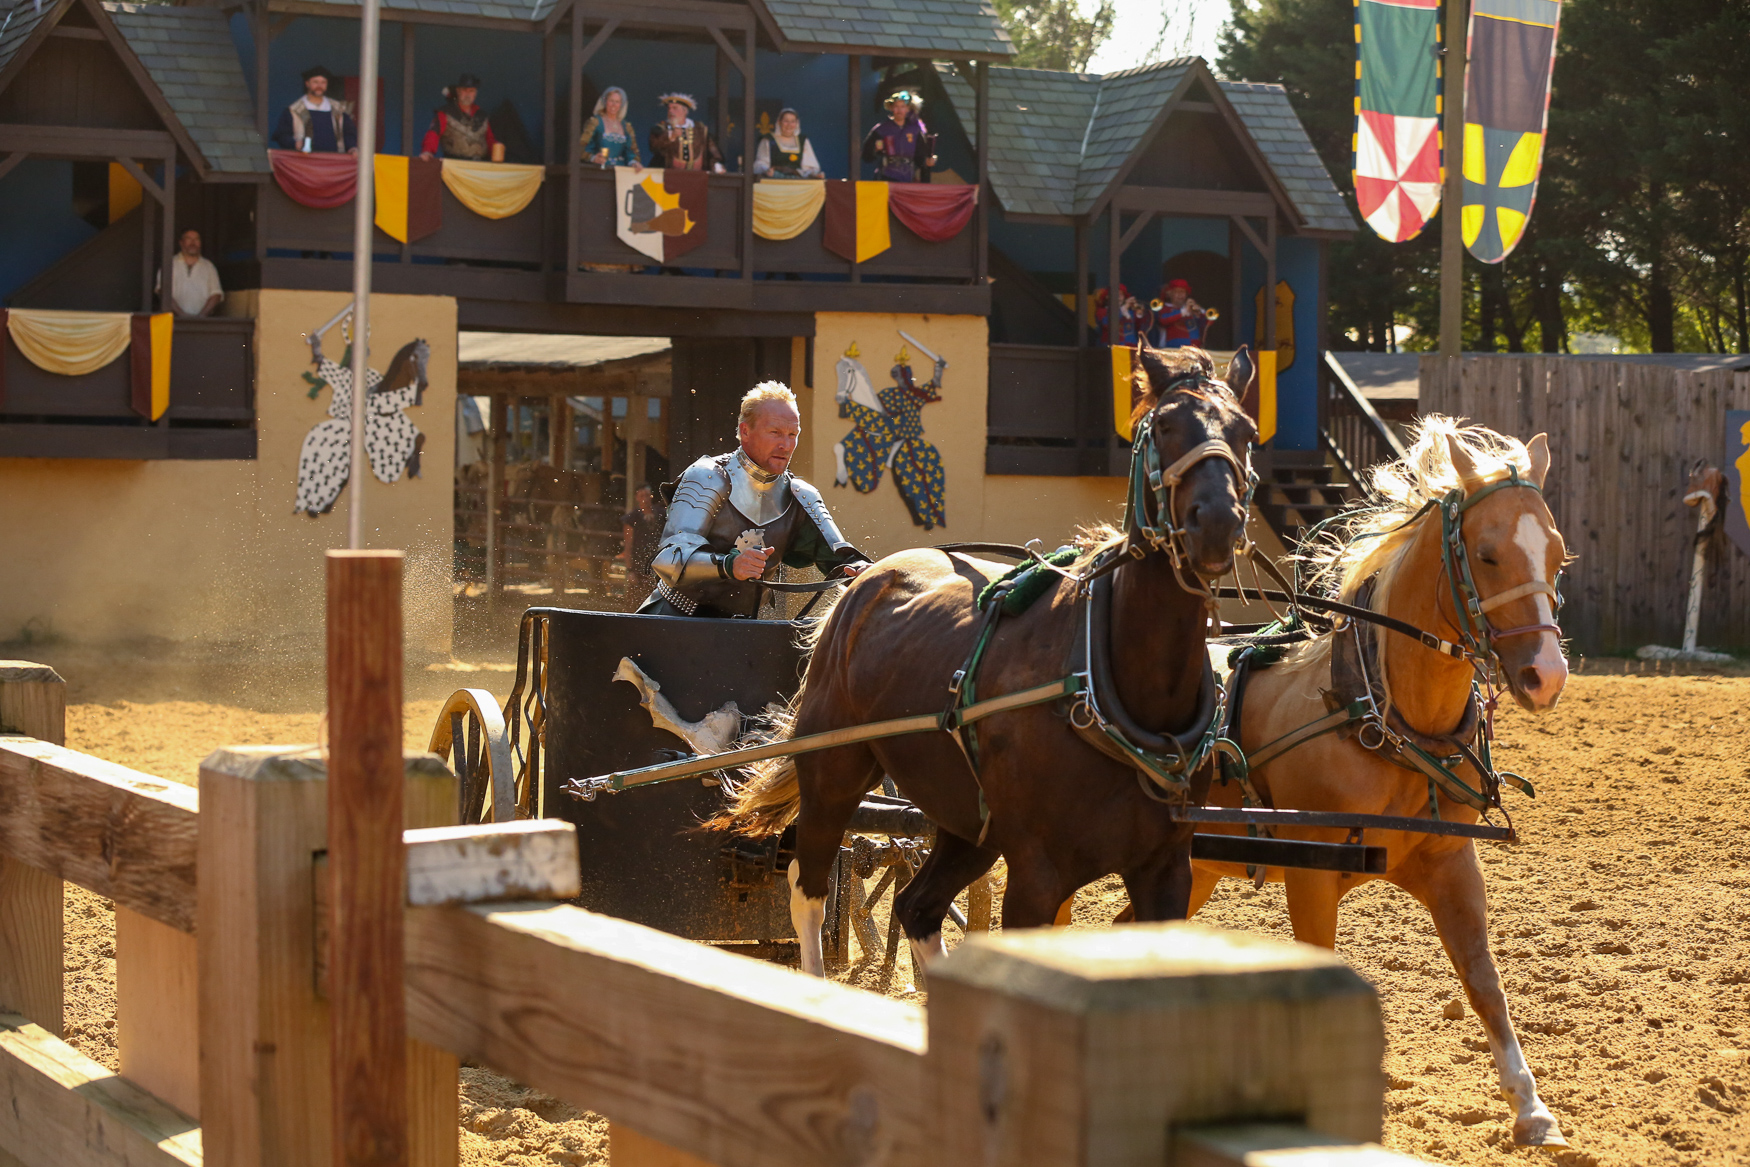 The Maryland Renaissance Festival is back, bringing history nerds, fantasy lovers and people who just want a break from reality together over turkey legs and flower crowns.{ } The festival, which will run Saturday and Sunday until October 21, features attractions ranging from magic shows to jousting. (Amanda Andrade-Rhoades/DC Refined)